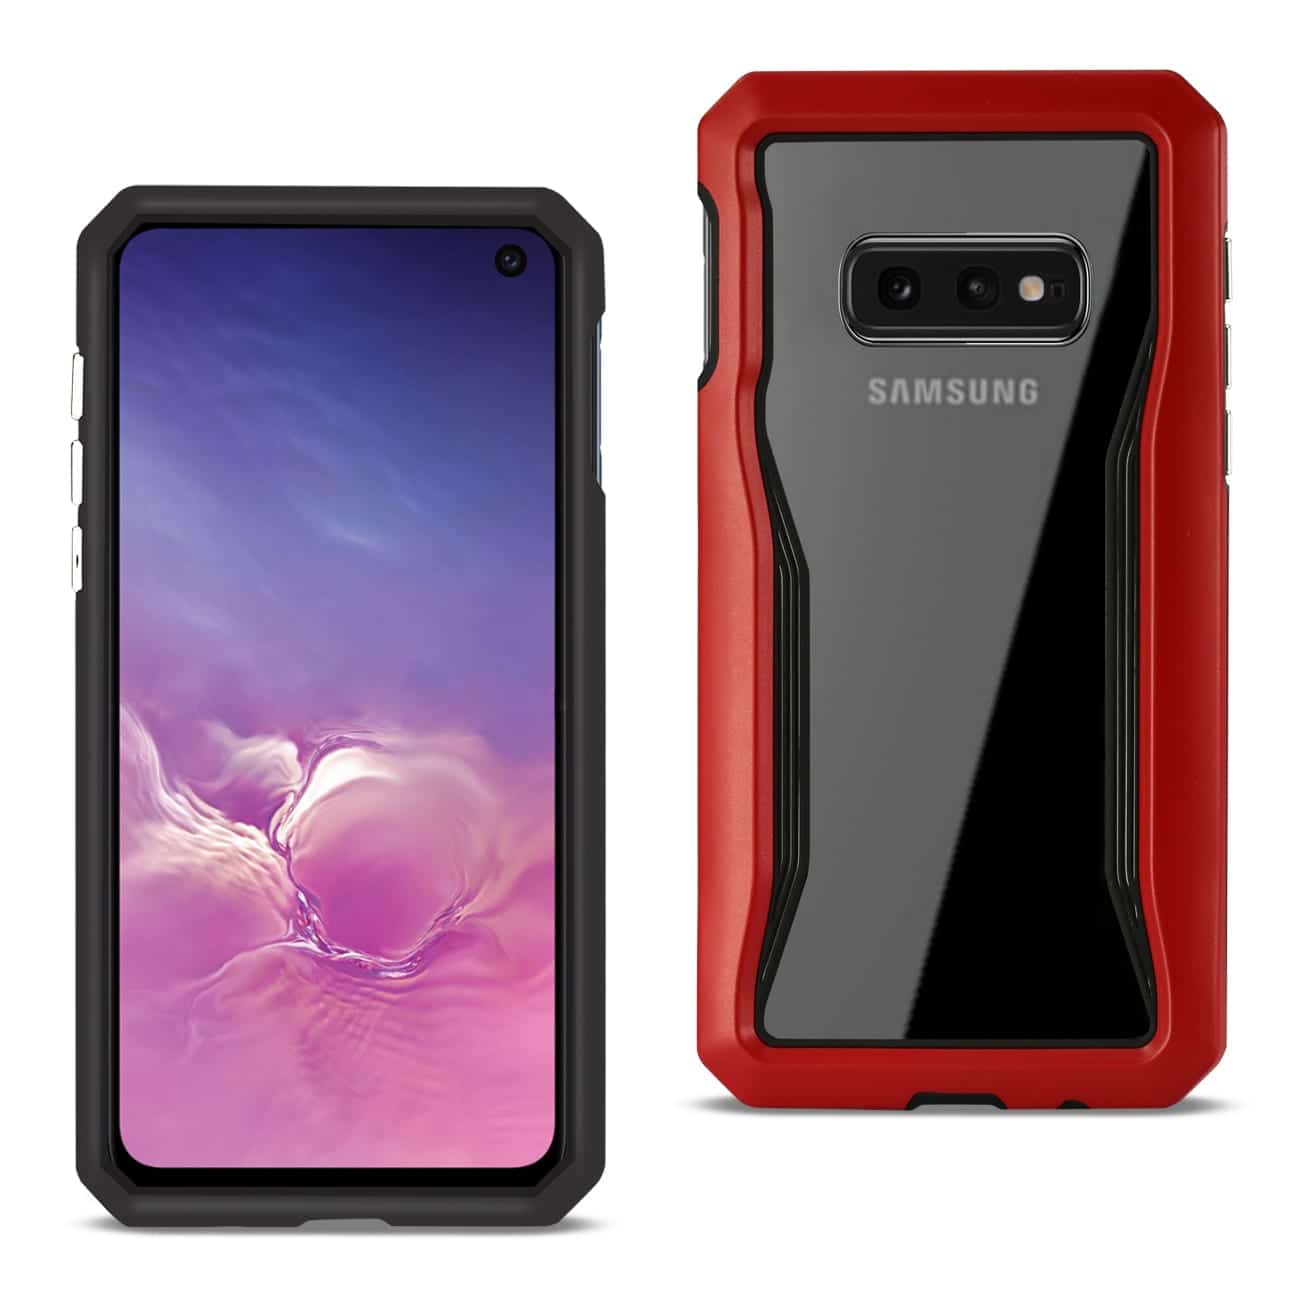 SAMSUNG GALAXY S10 Lite Protective Cover In Red